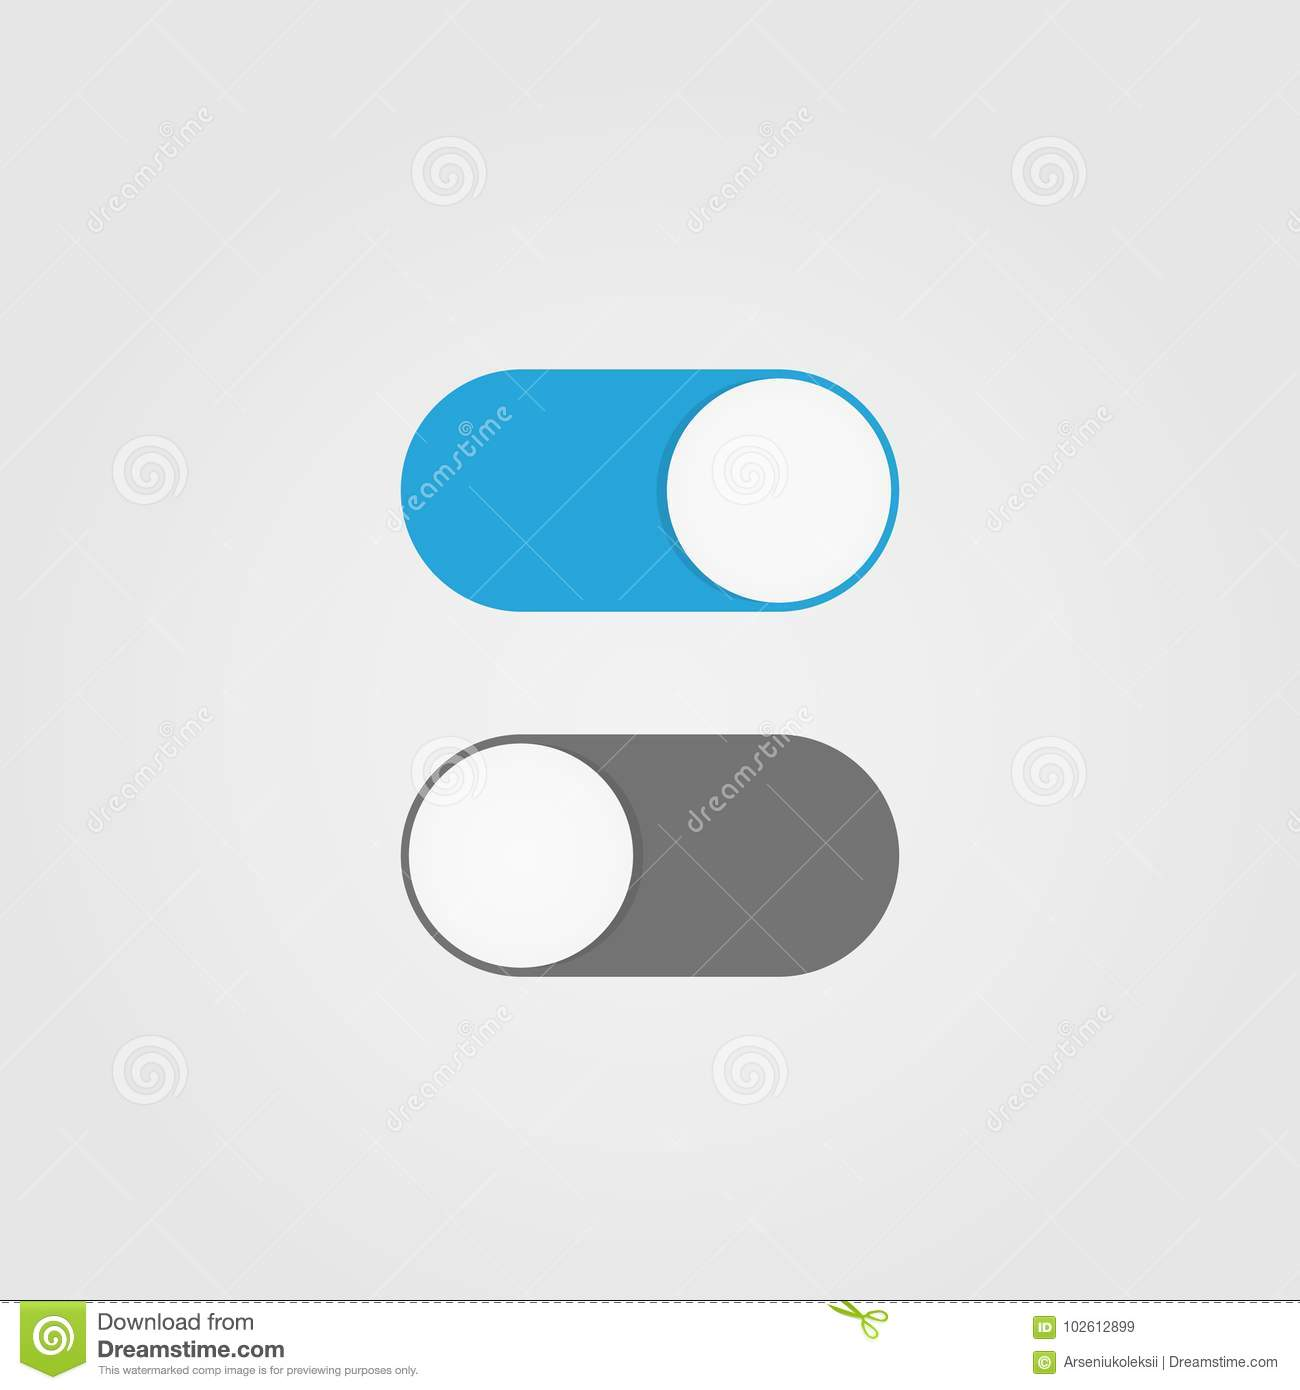 On And Off Switch Buttons Download Free Vector Art Stock Toggle Electronicslab Illustration Of Round 102612899